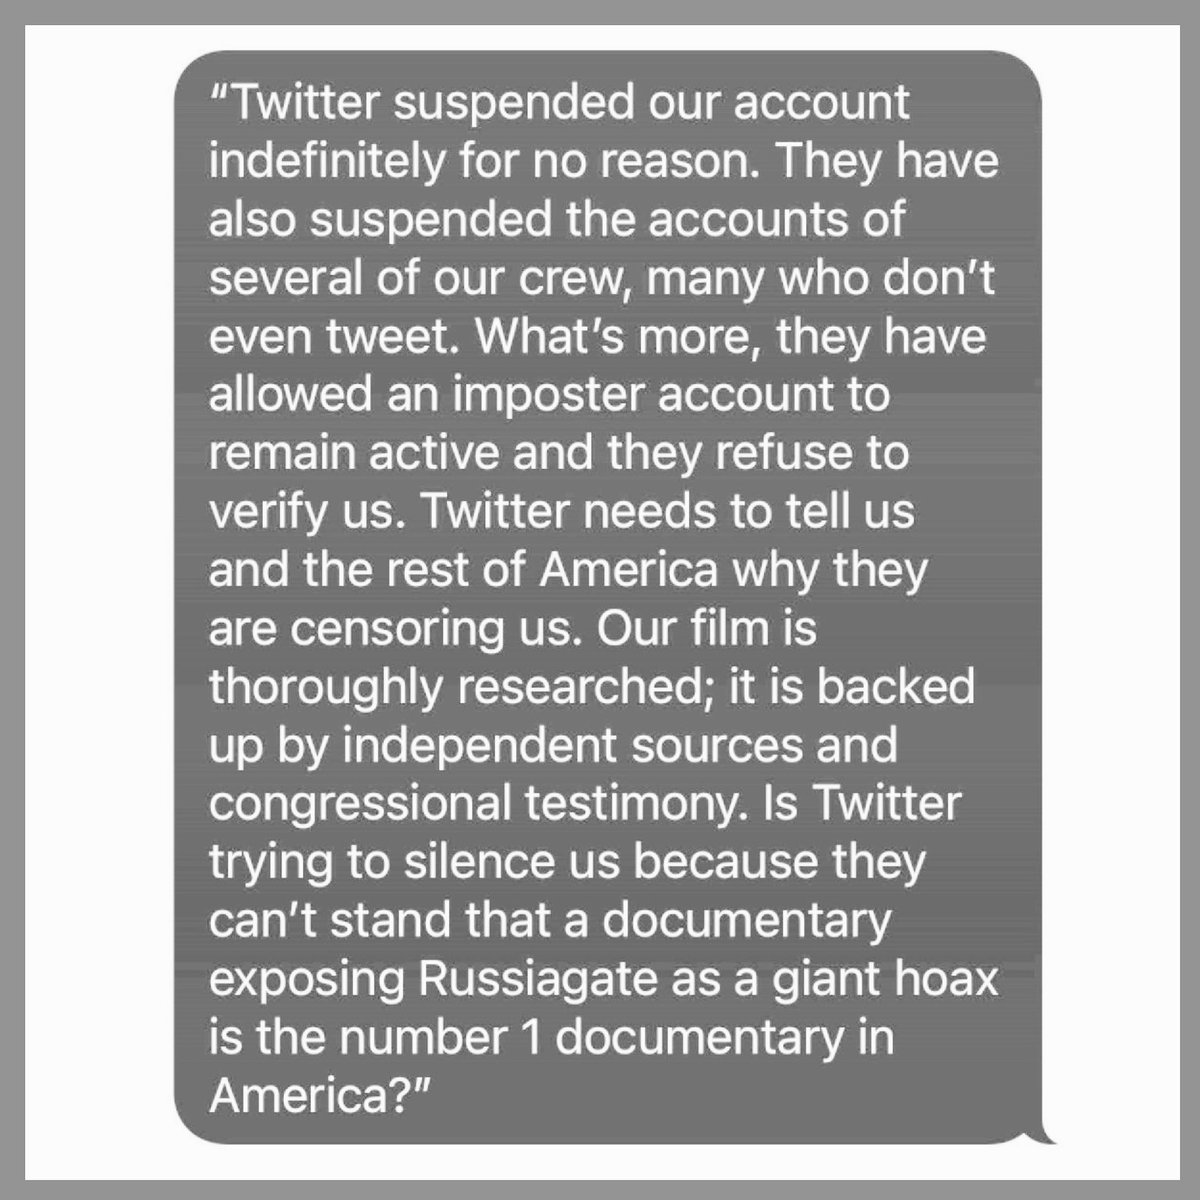 .@Twitter has suspended The Plot Against The President account, here is statement from producers. #ObamaGateAintGoingAway https://t.co/XCt98FubaJ